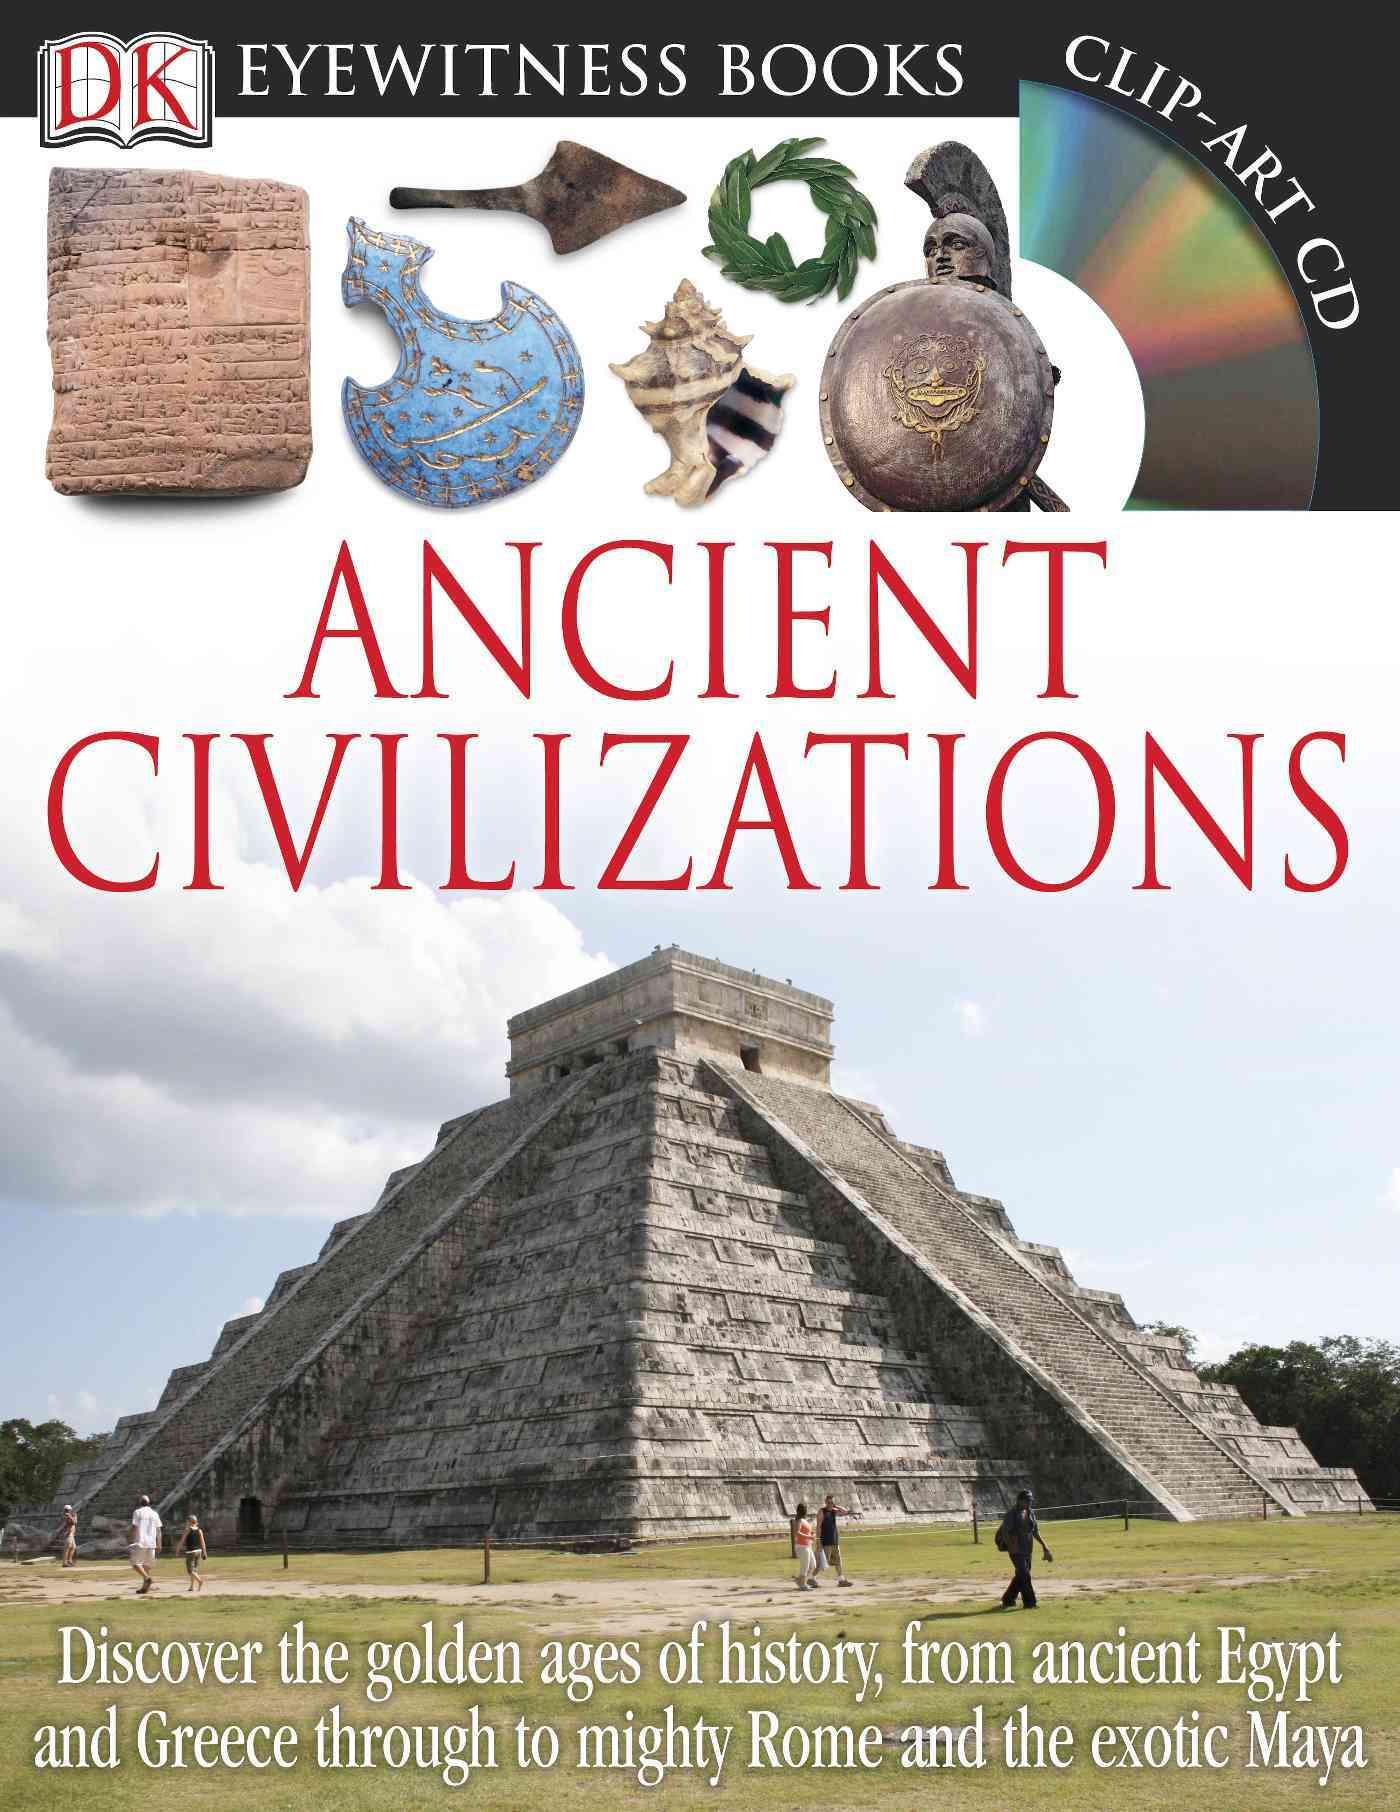 Ancient Civilizations By Dorling Kindersley, Inc. (COR)